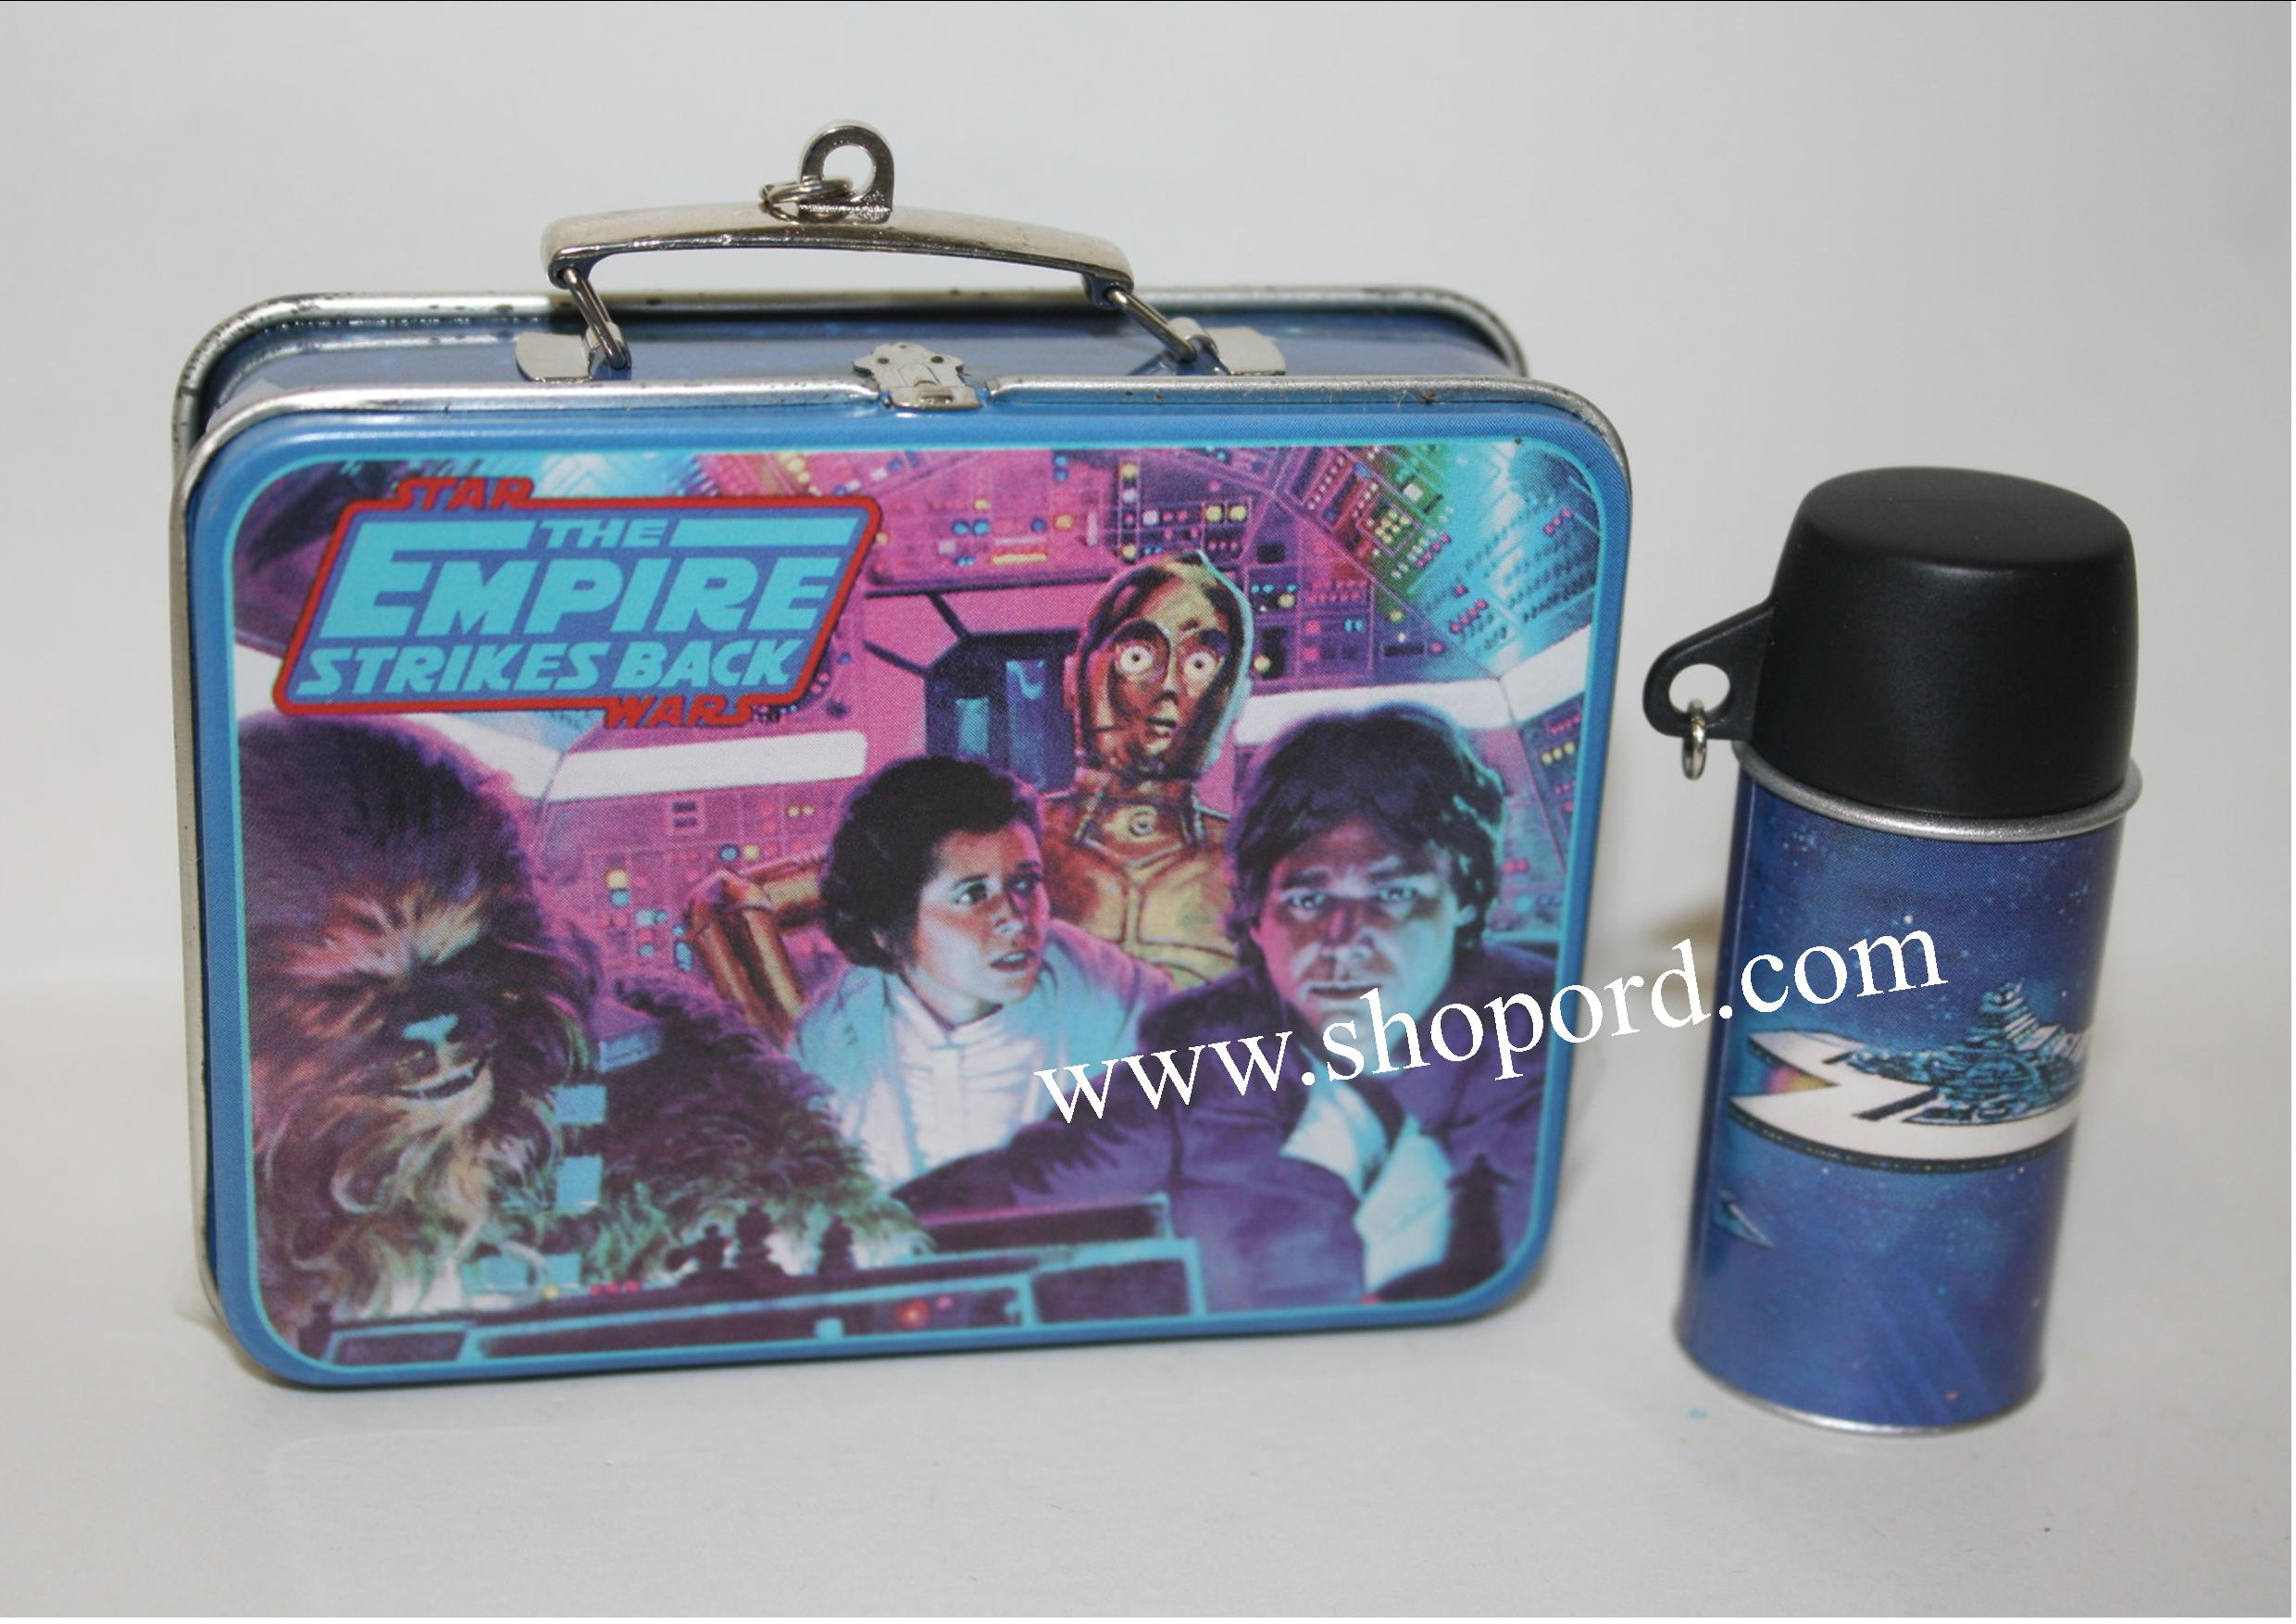 Hallmark 2001 The Empire Strikes Back Lunch Box And Drink Container  set of 2 Spring Ornament Star Wars QEO8585